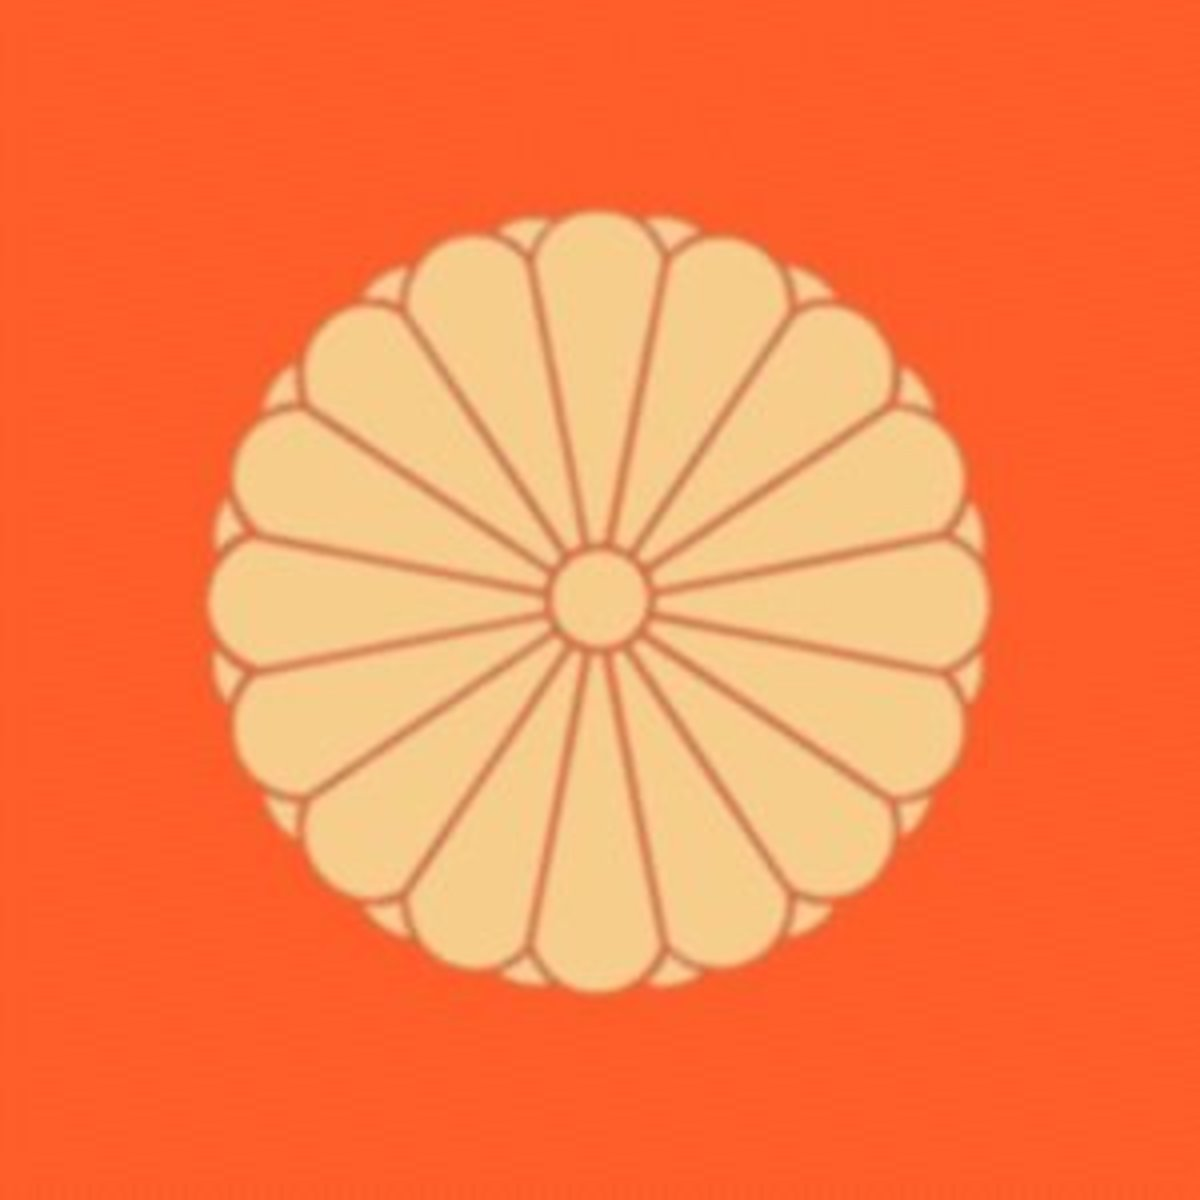 The Imperial Seal of Japan features a stylized representation of a chrysanthemum flower.